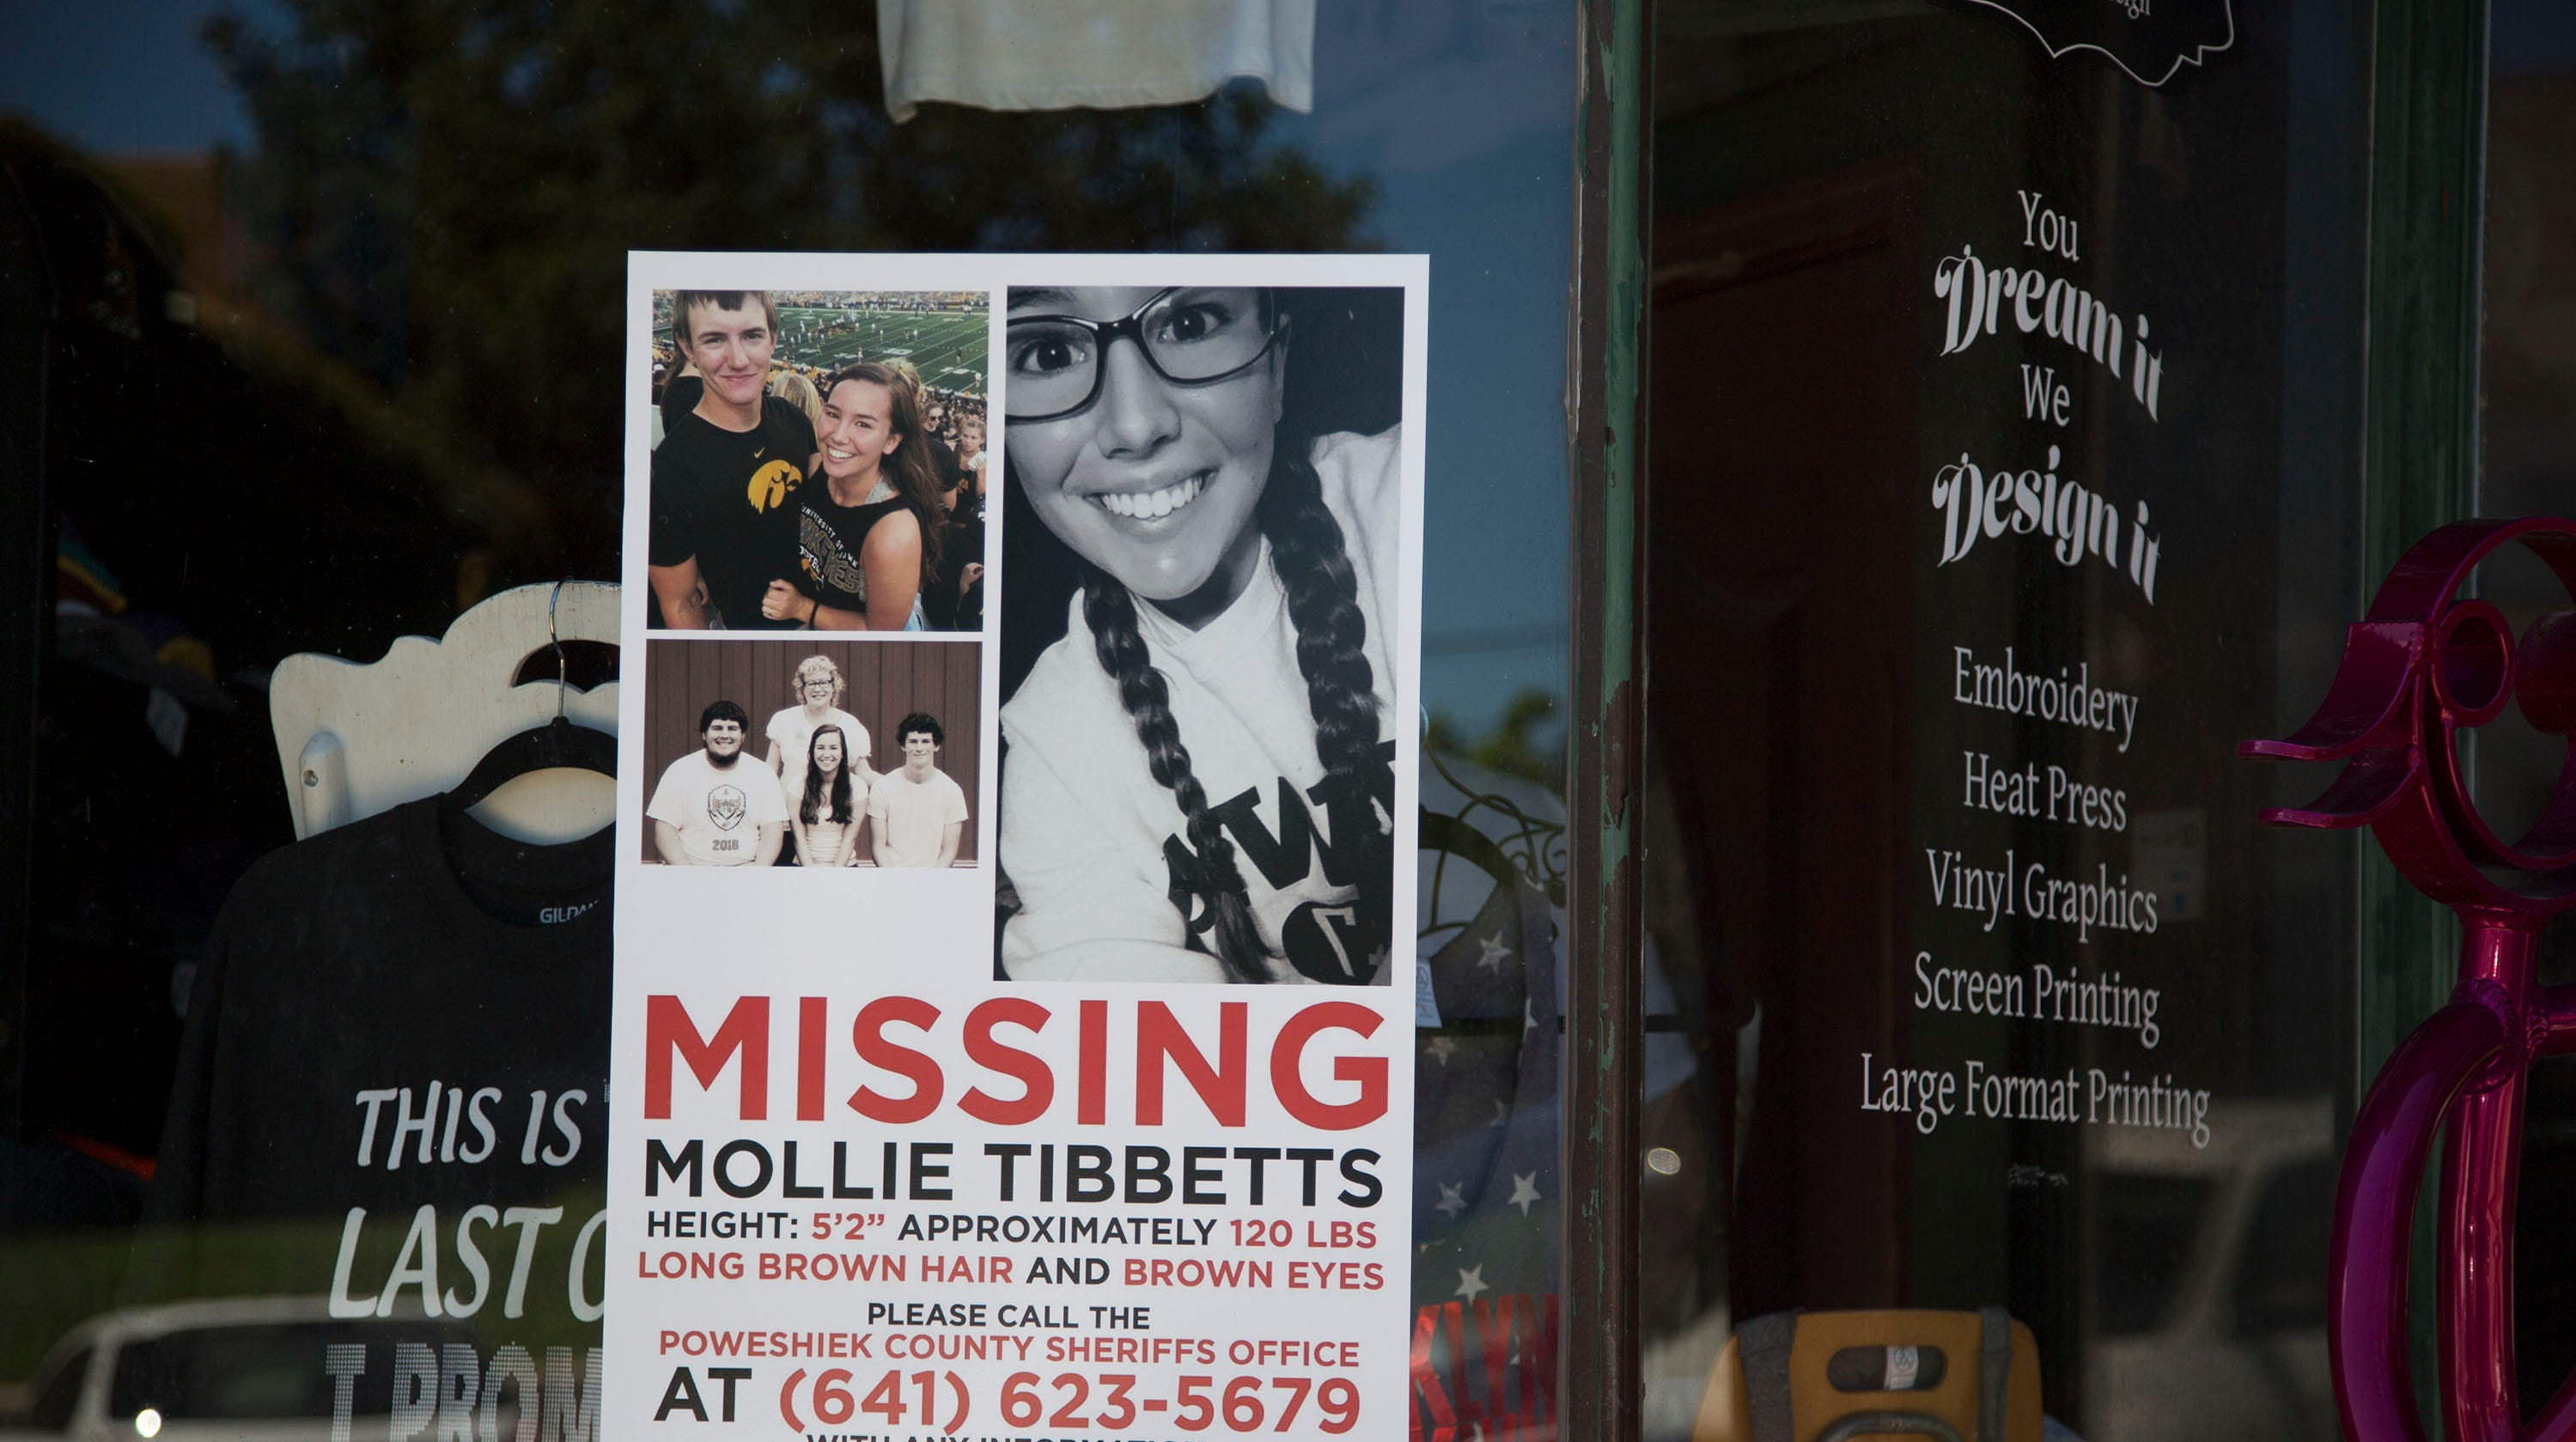 Iowa Denny's holding 'Donation Day' today to help Mollie Tibbetts' family